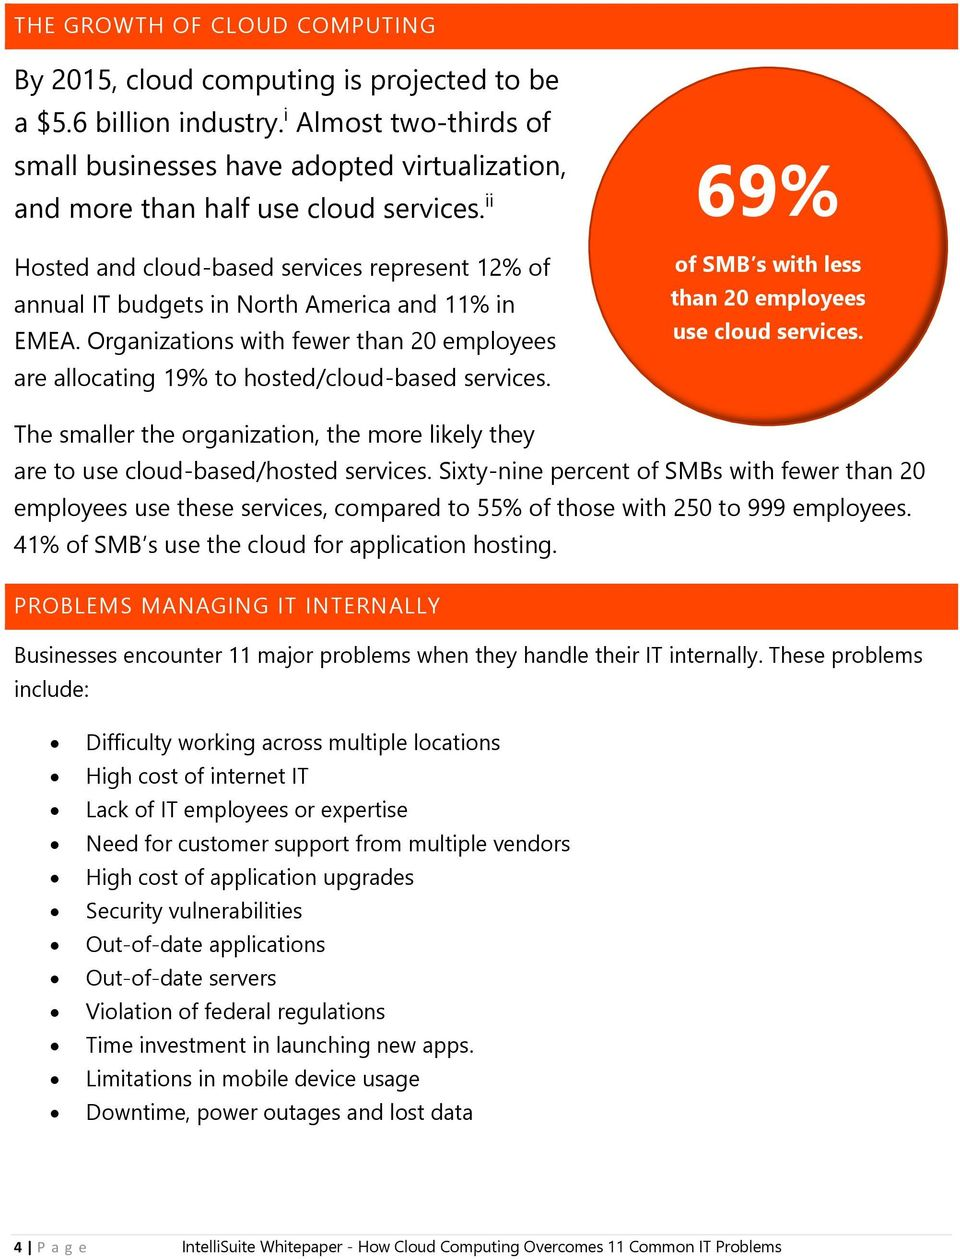 ii Hosted and cloud-based services represent 12% of annual IT budgets in North America and 11% in EMEA. Organizations with fewer than 20 employees are allocating 19% to hosted/cloud-based services.